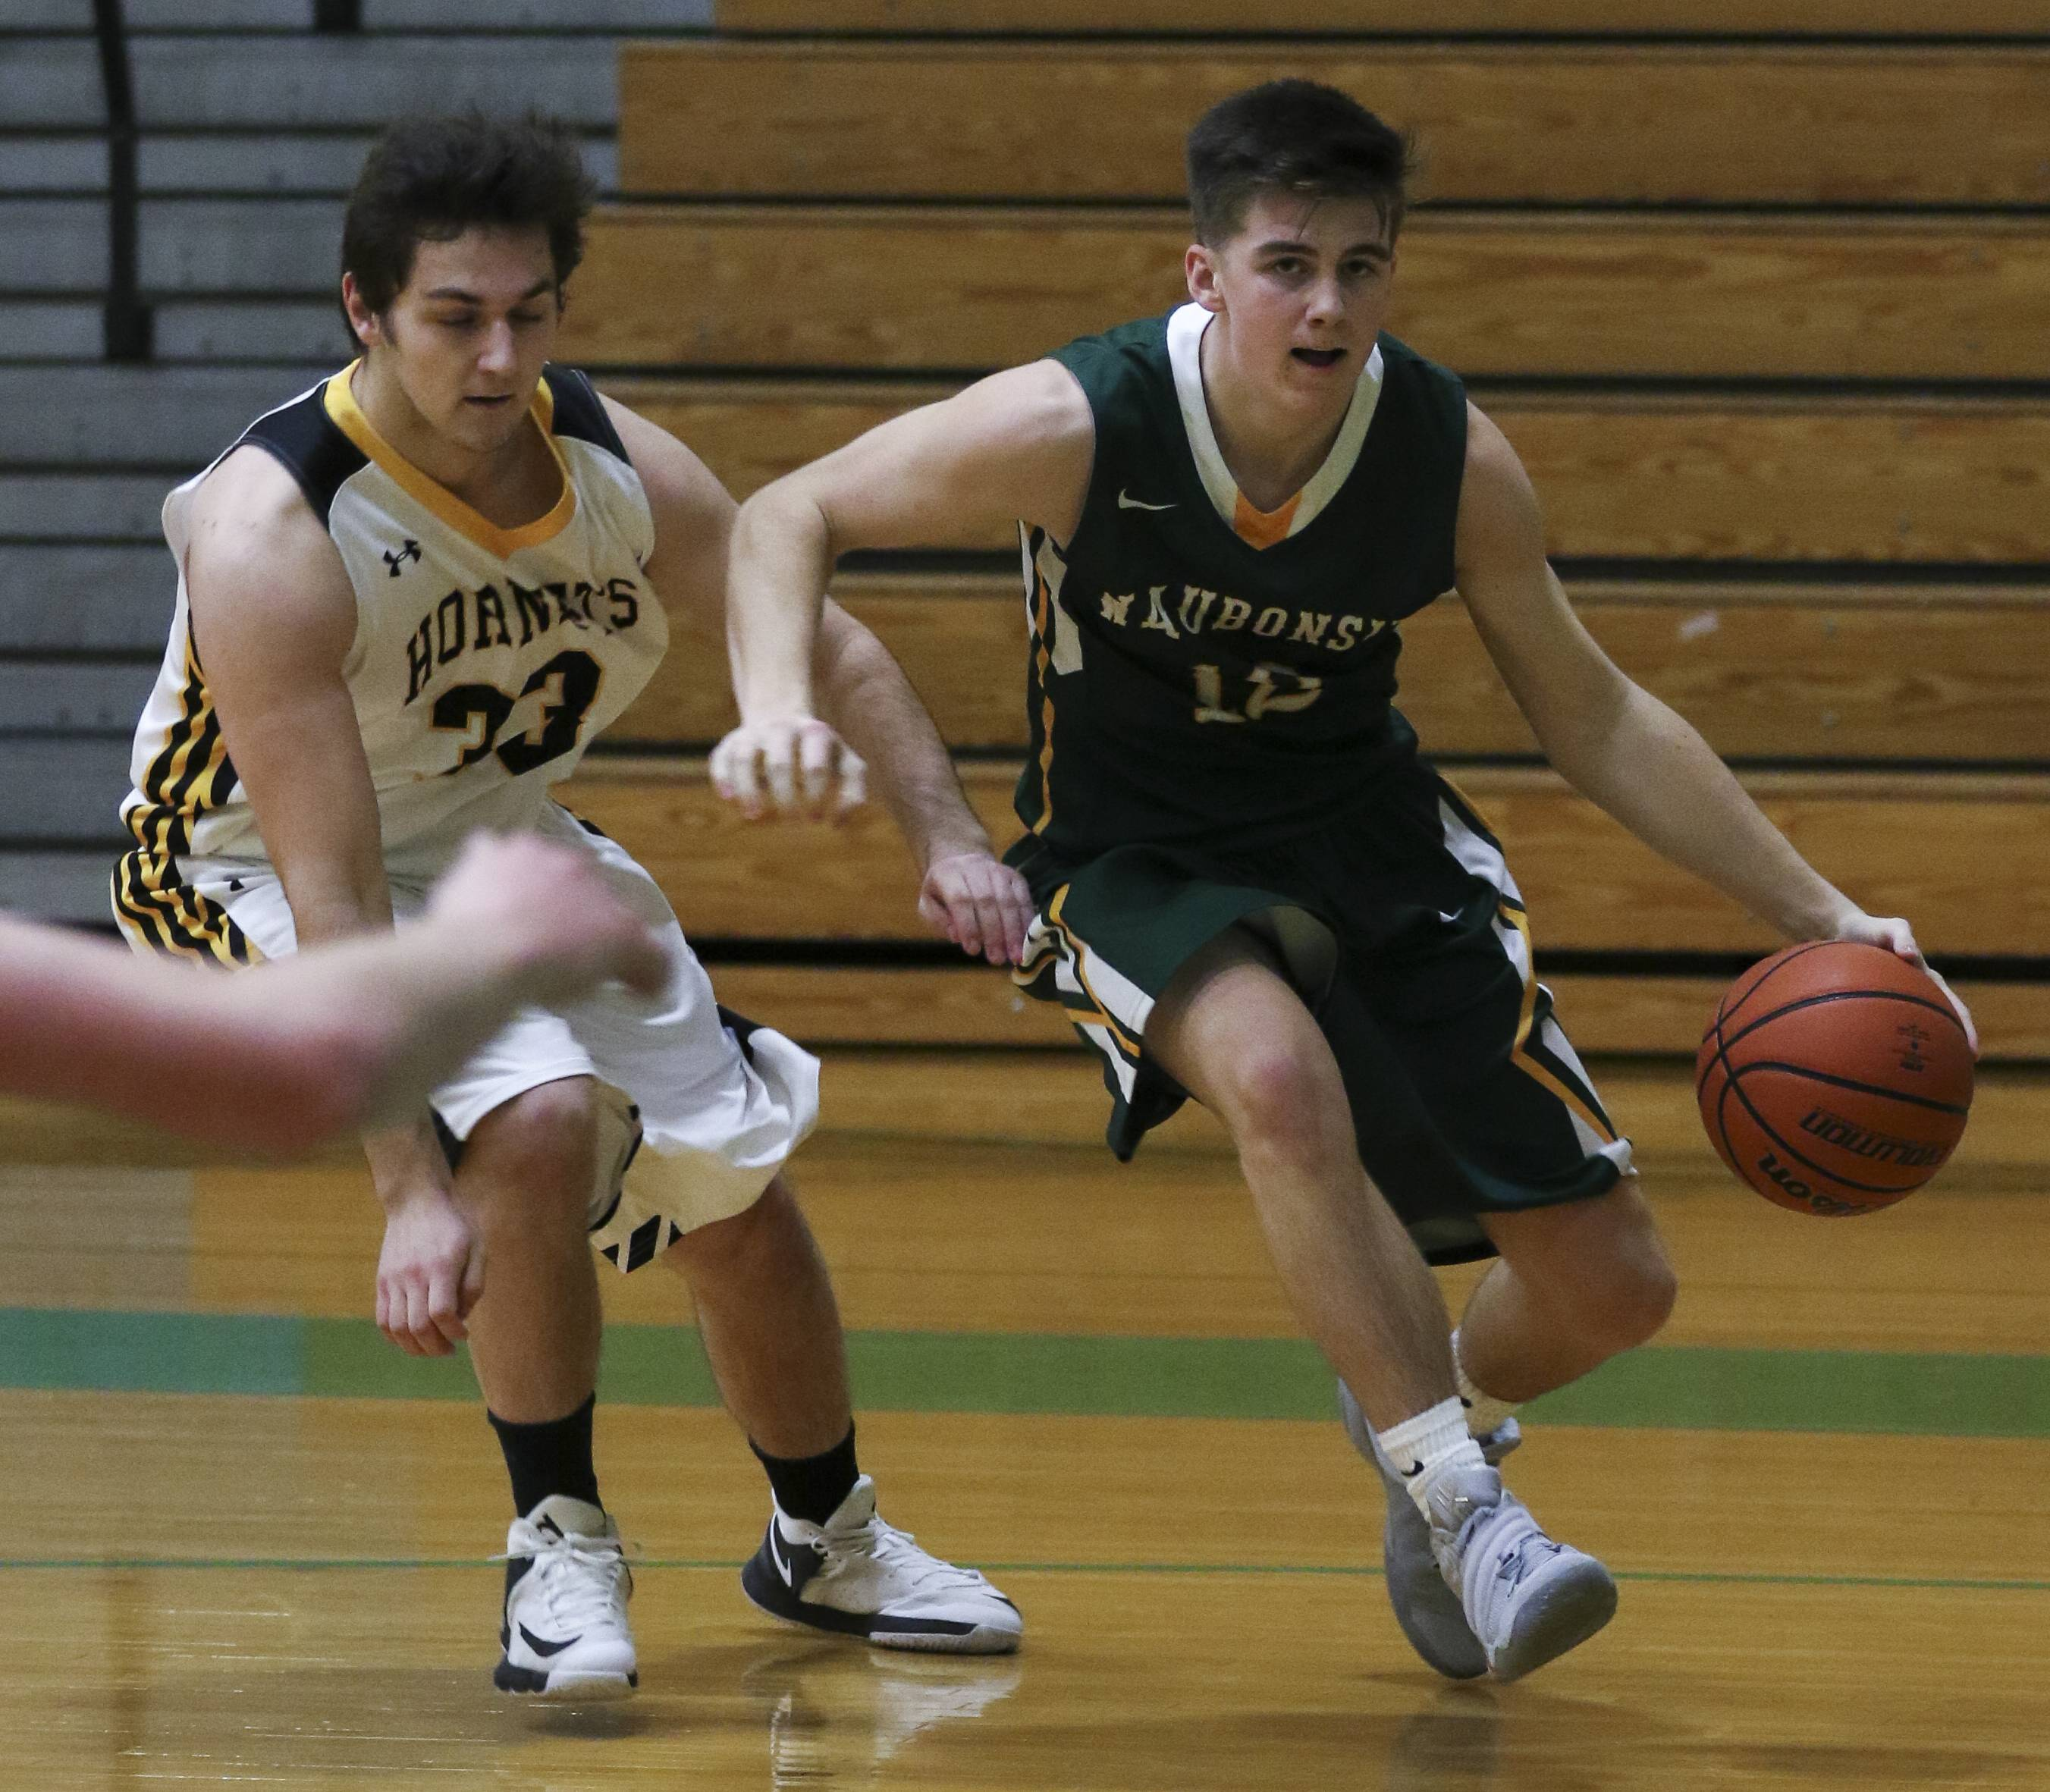 Waubonsie Valley's Justin Mullinax moves around Ethan Ashmore, left, of  Hinsdale South during boys basketball at the Jack Tosh Holiday Classic at York High School on Monday.